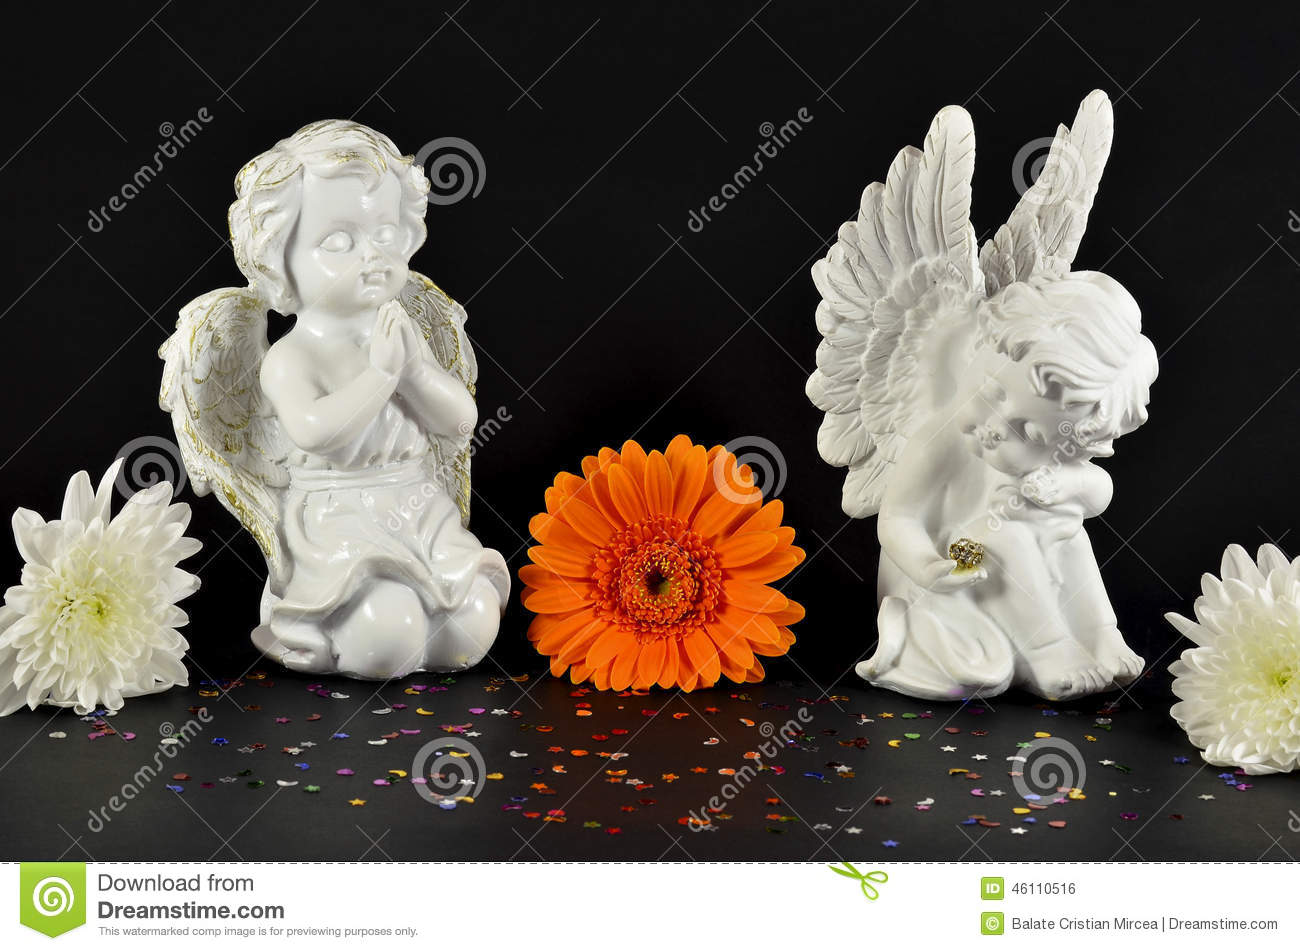 download christmas angels with flowers for gifts isolated on black stock photo image of - Black Christmas Angels